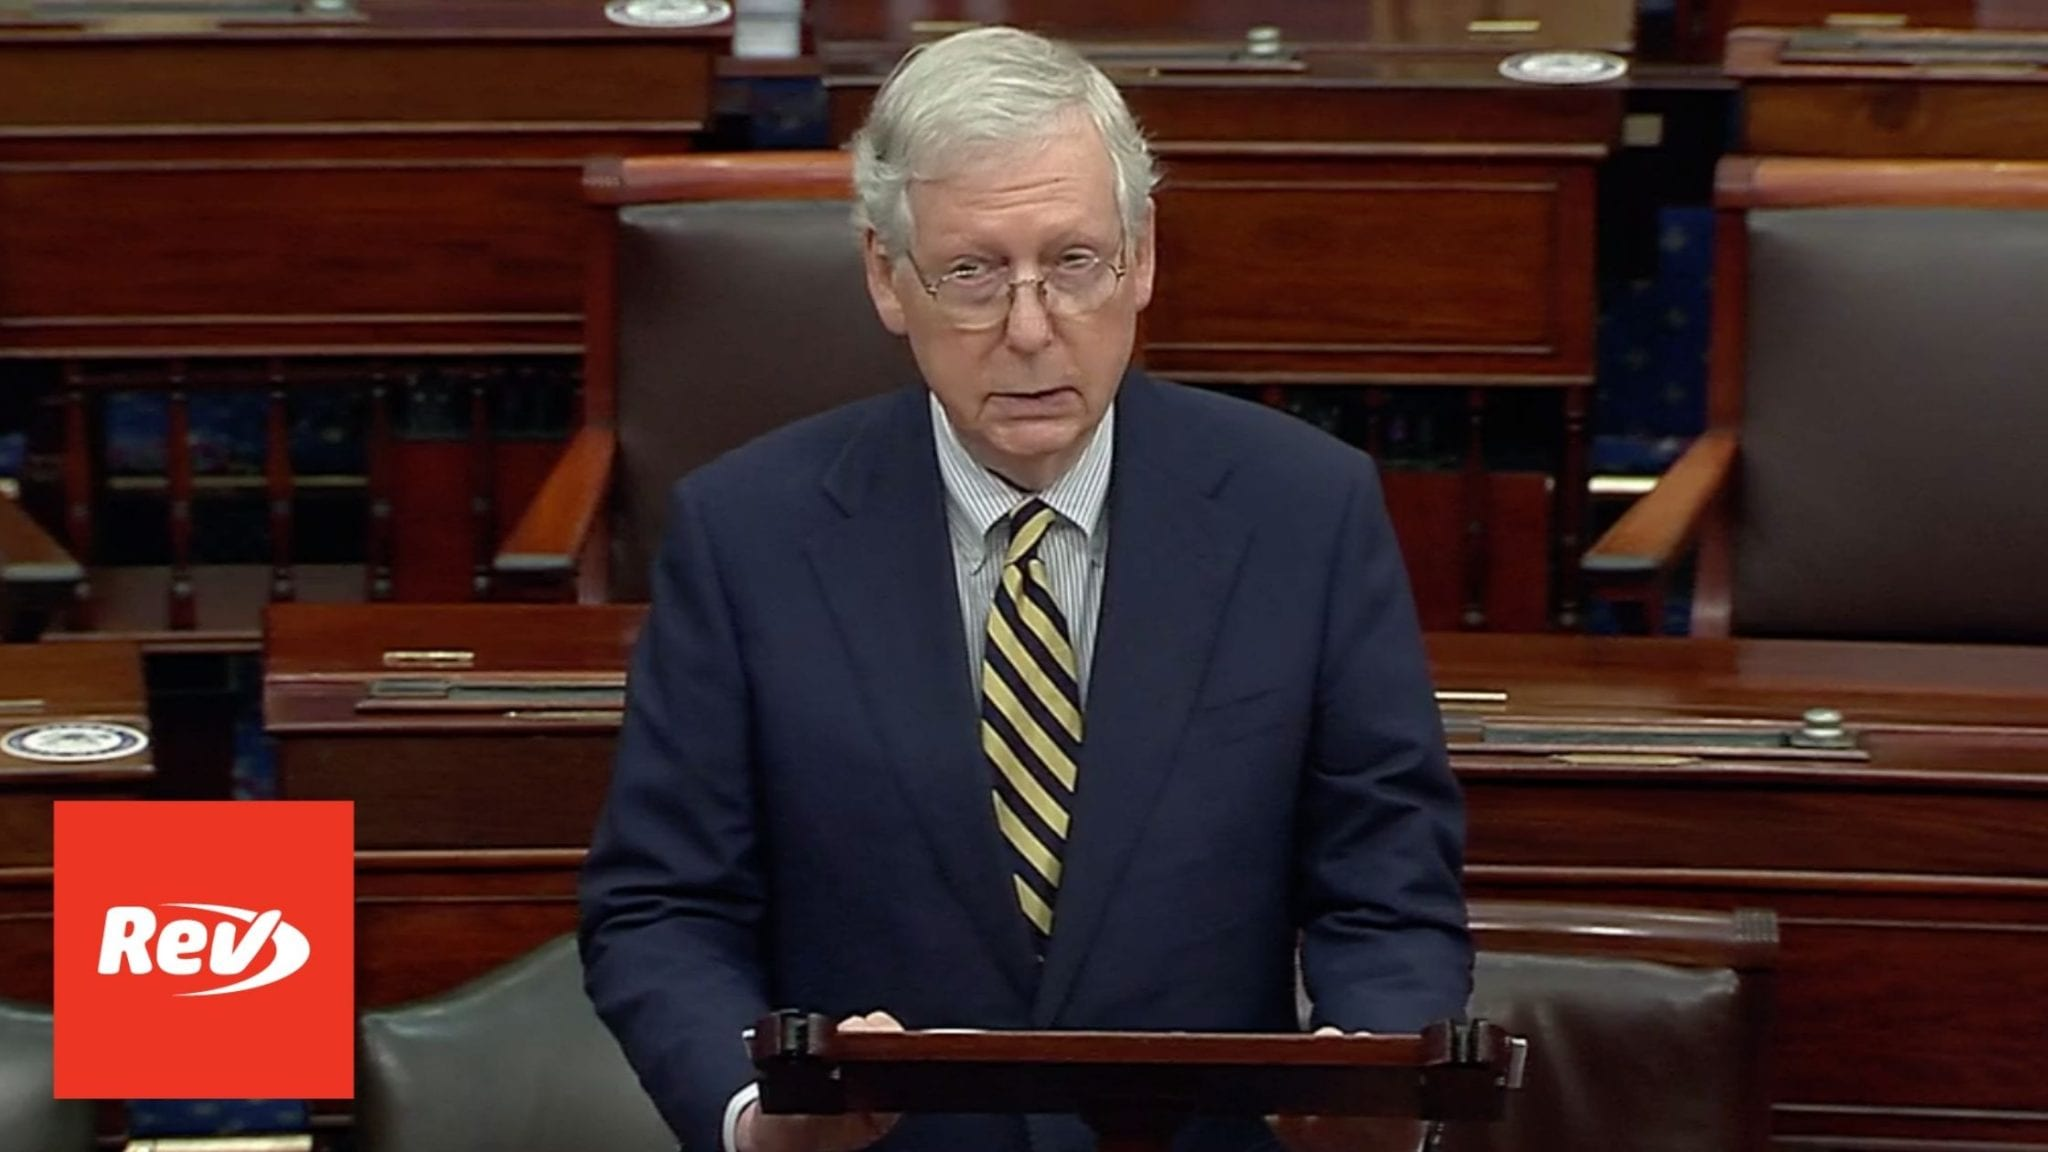 Mitch McConnell, Chuck Schumer Address SCOTUS Nomination Transcript